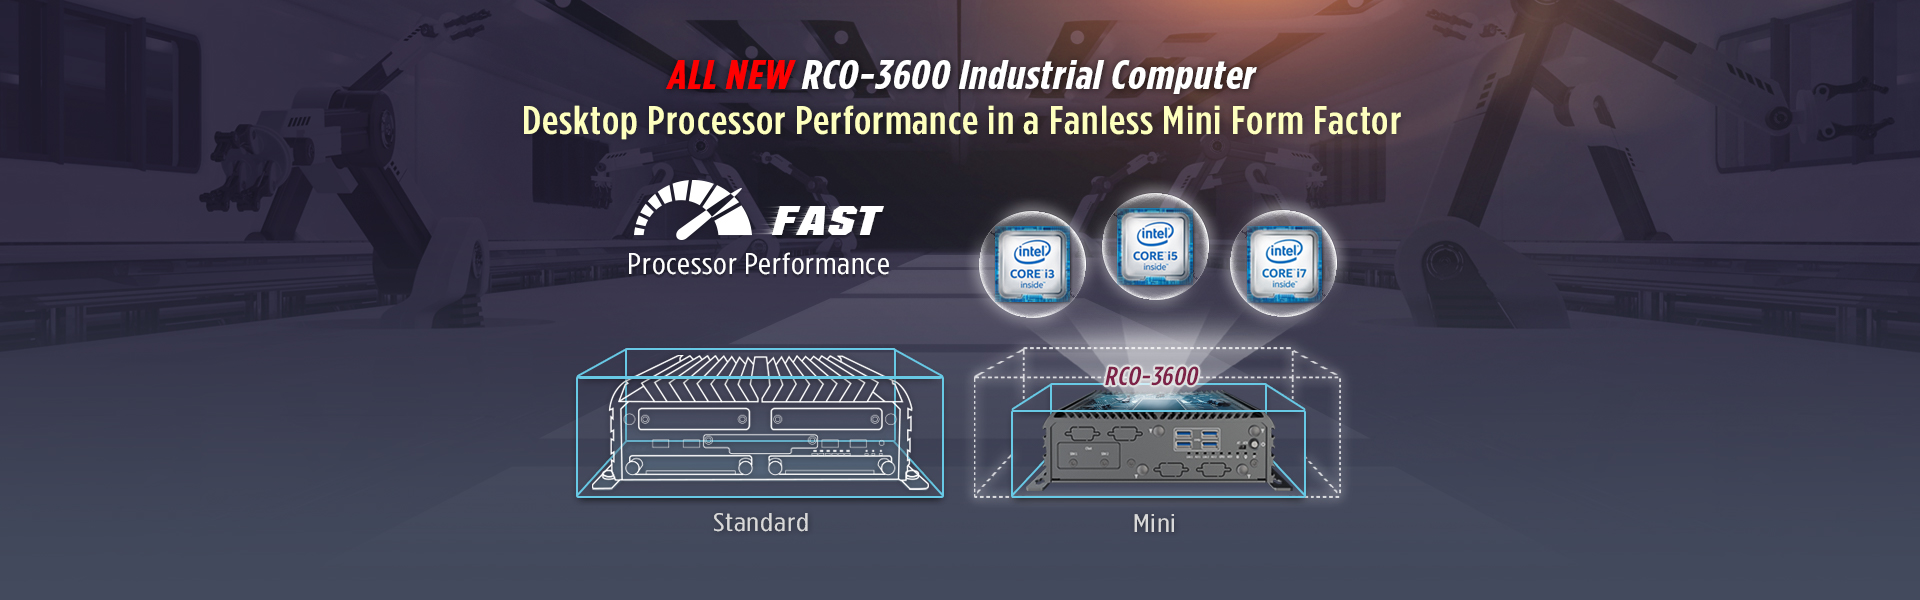 RCO-3600 Compact Performance Industrial Computer